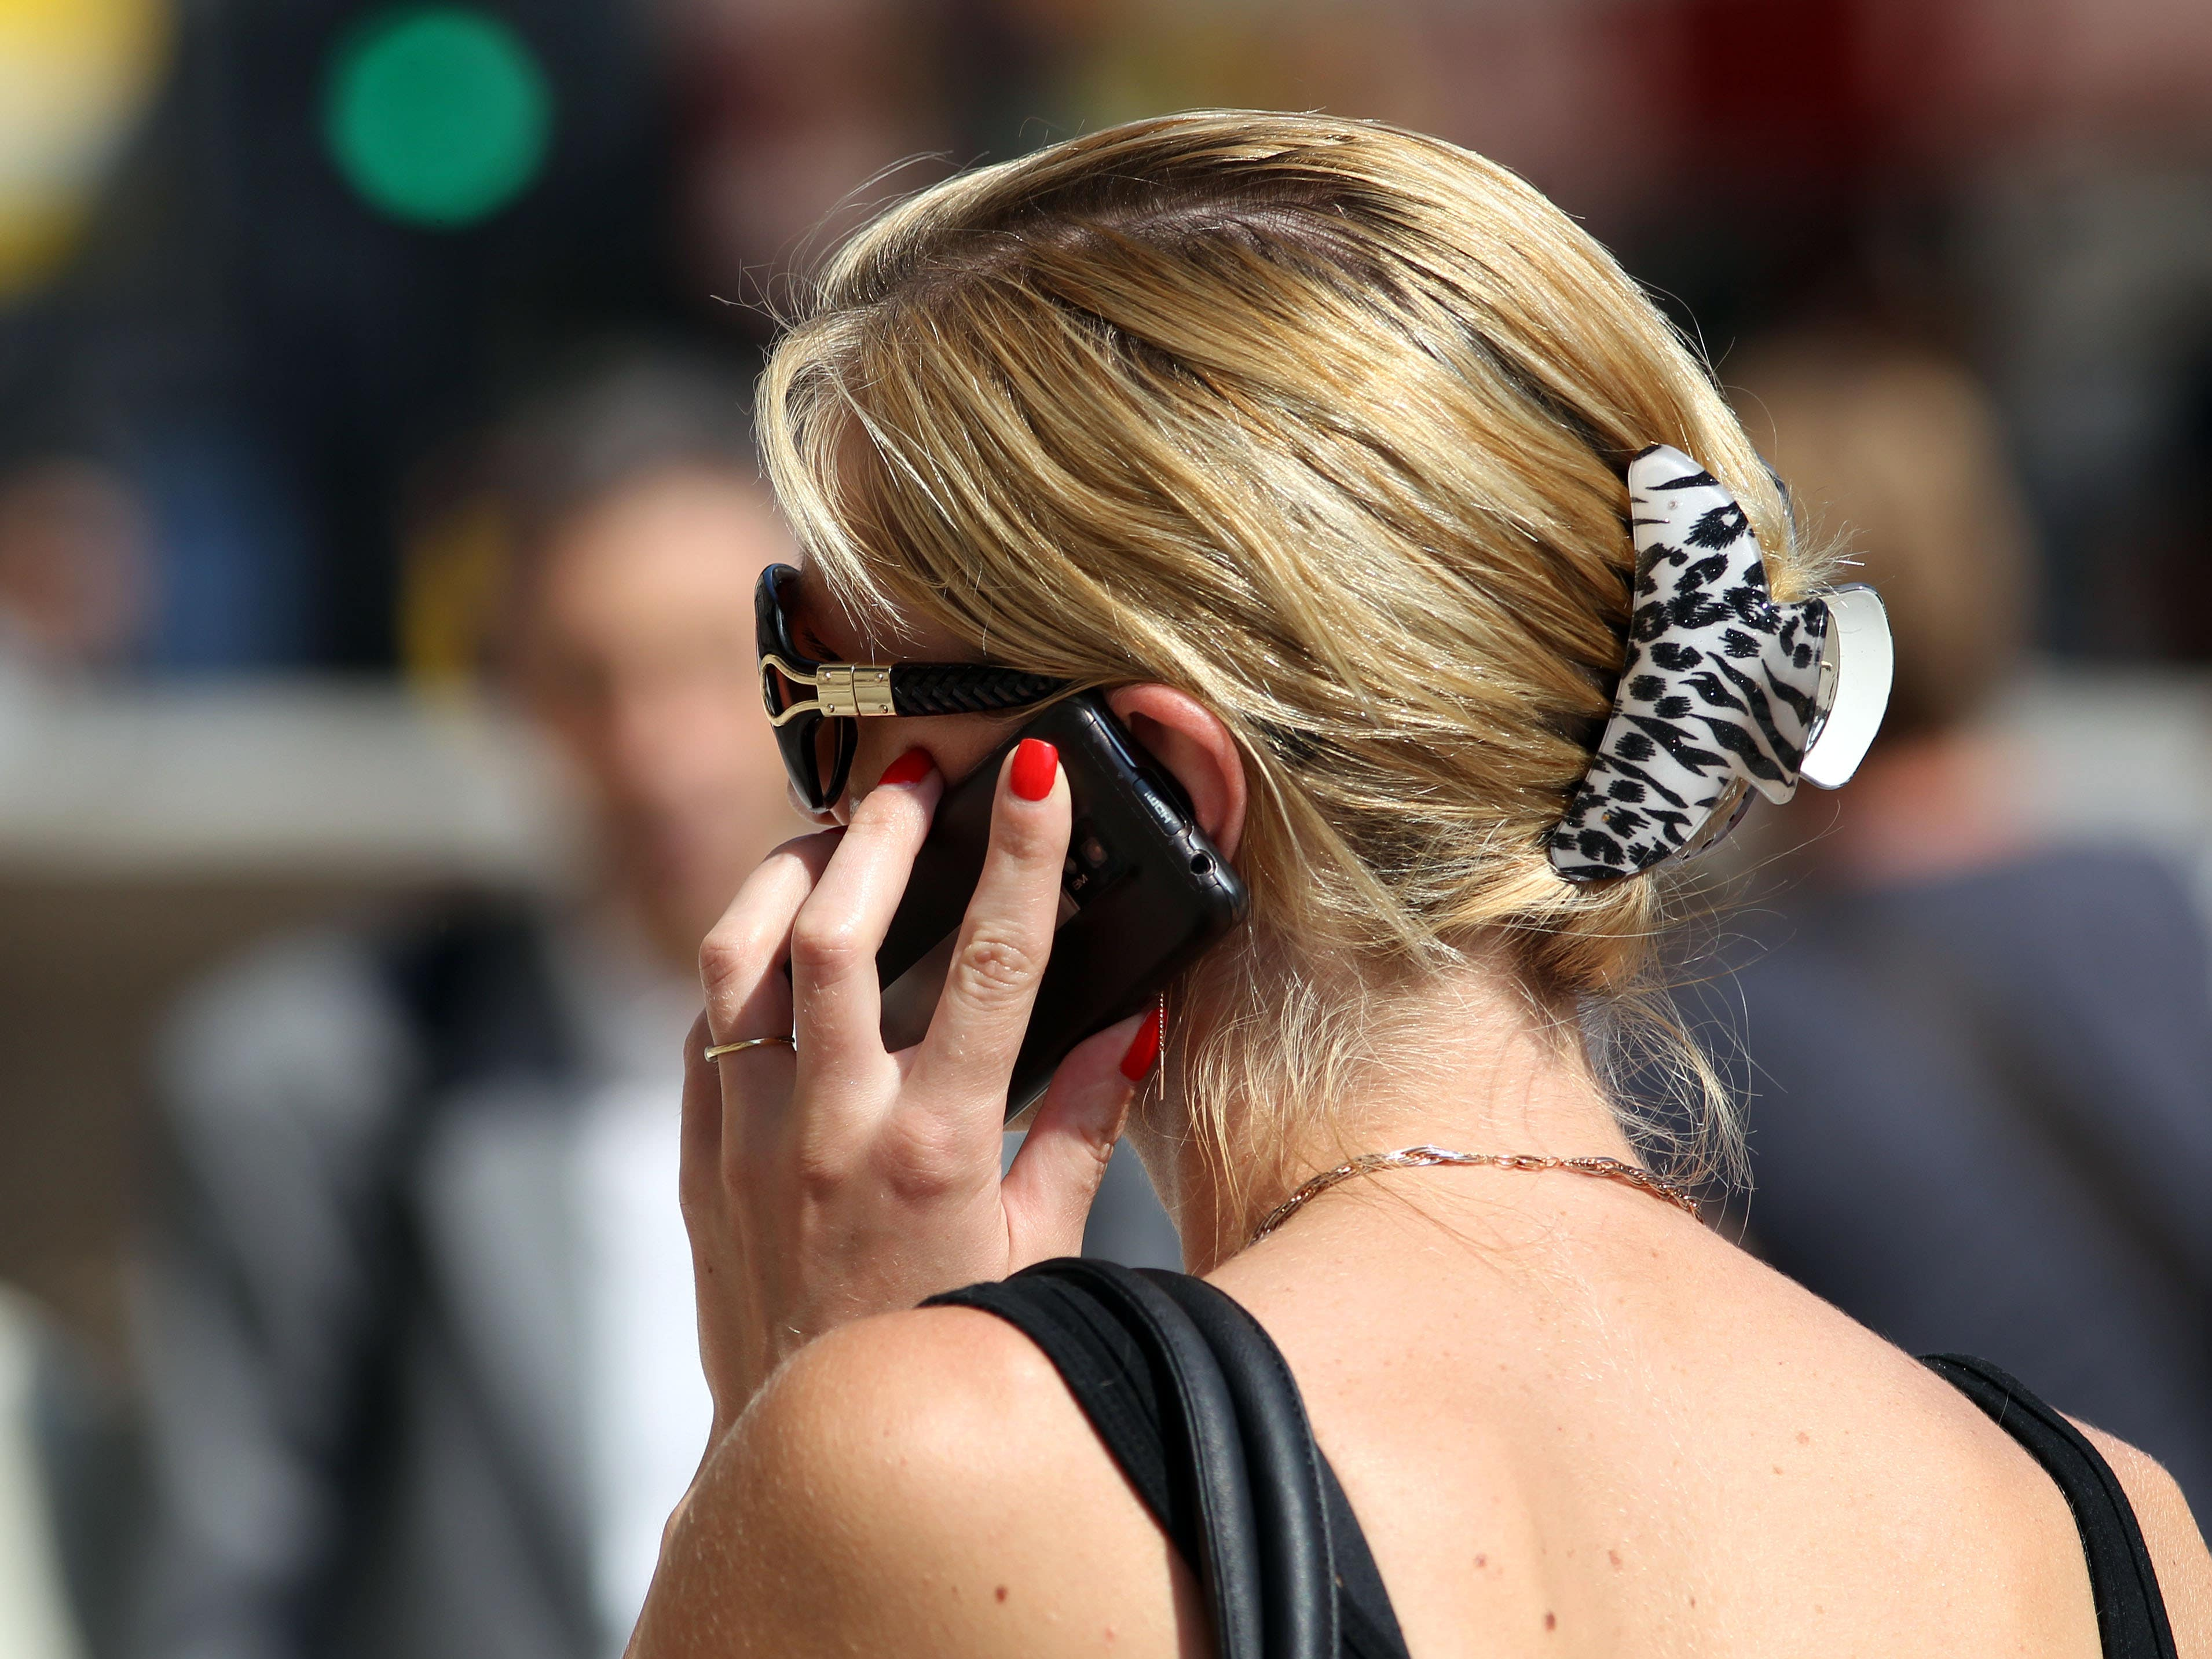 The move will affect new EE customers and those upgrading from July 7